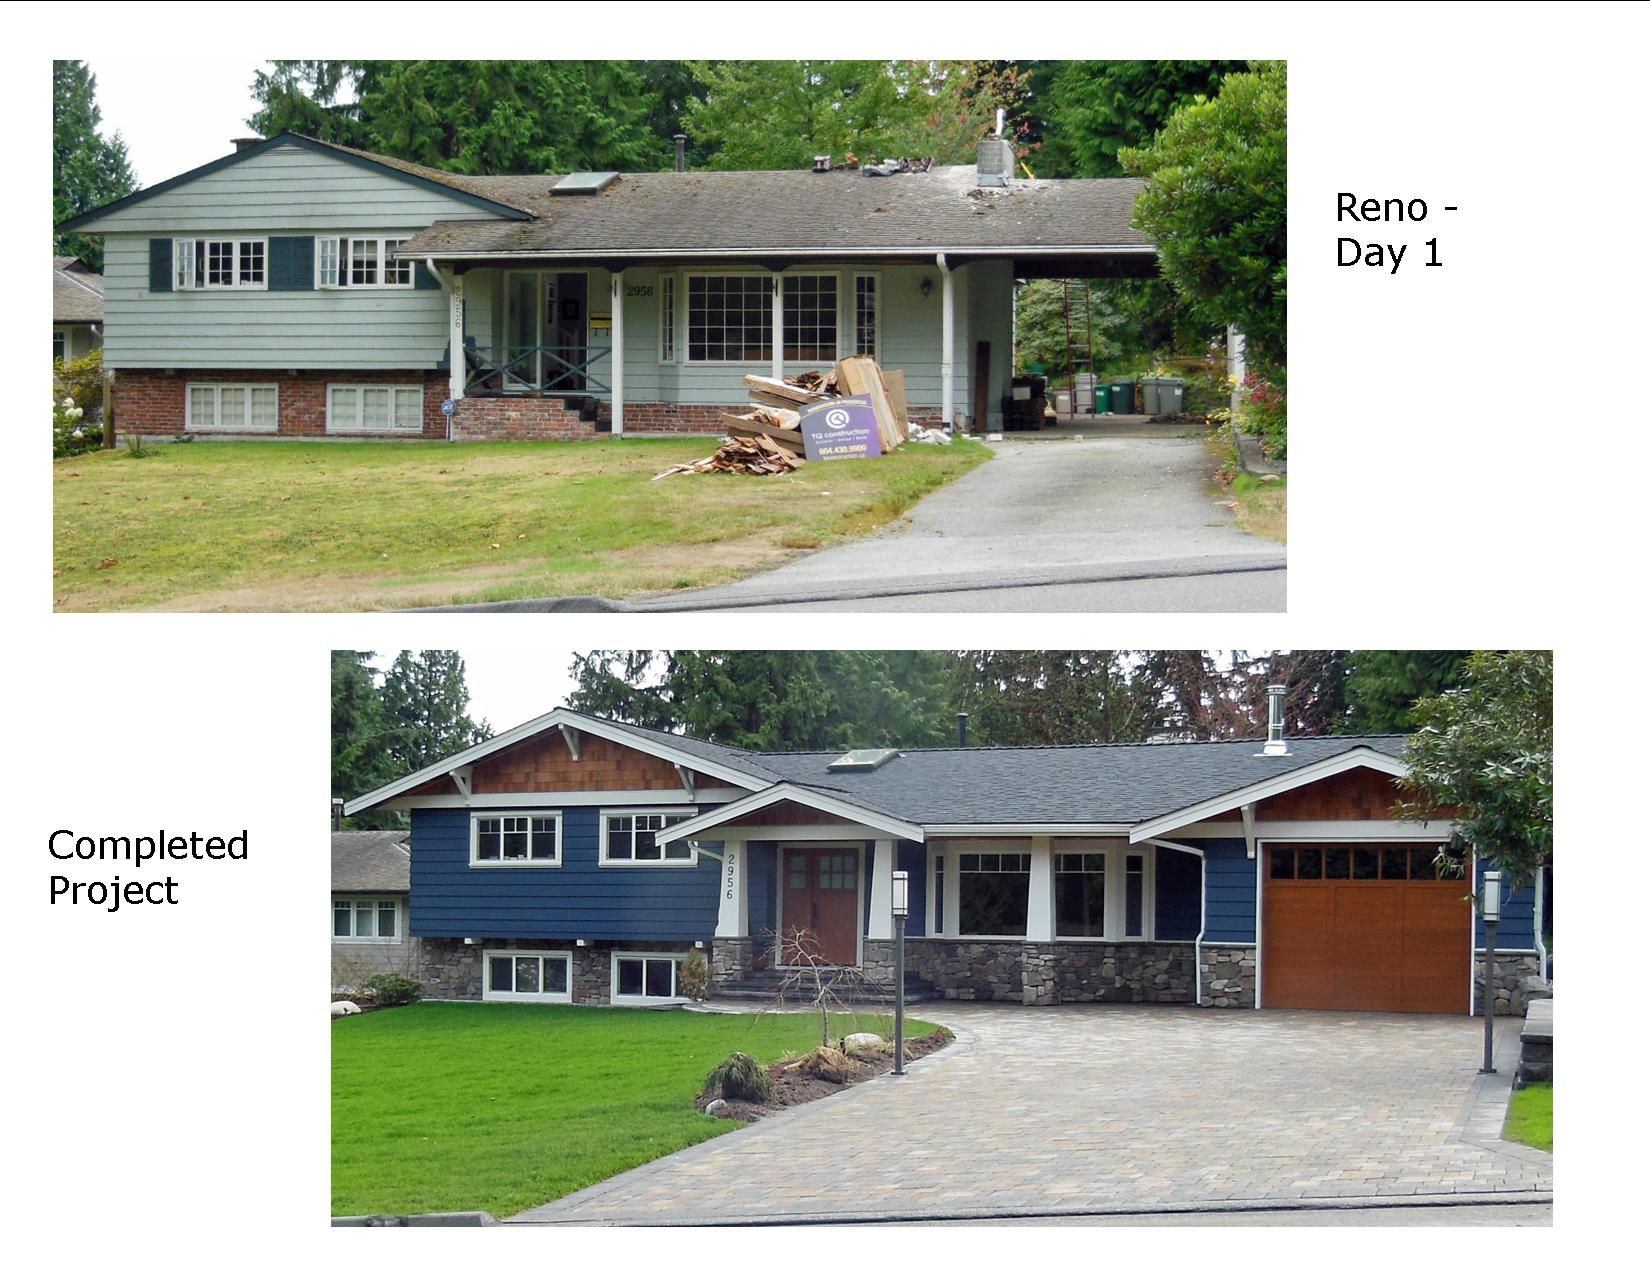 Pin By Mary Mitchell On Curb Appeal Exterior House Remodel Split Level Remodel Exterior Split Entry Remodel